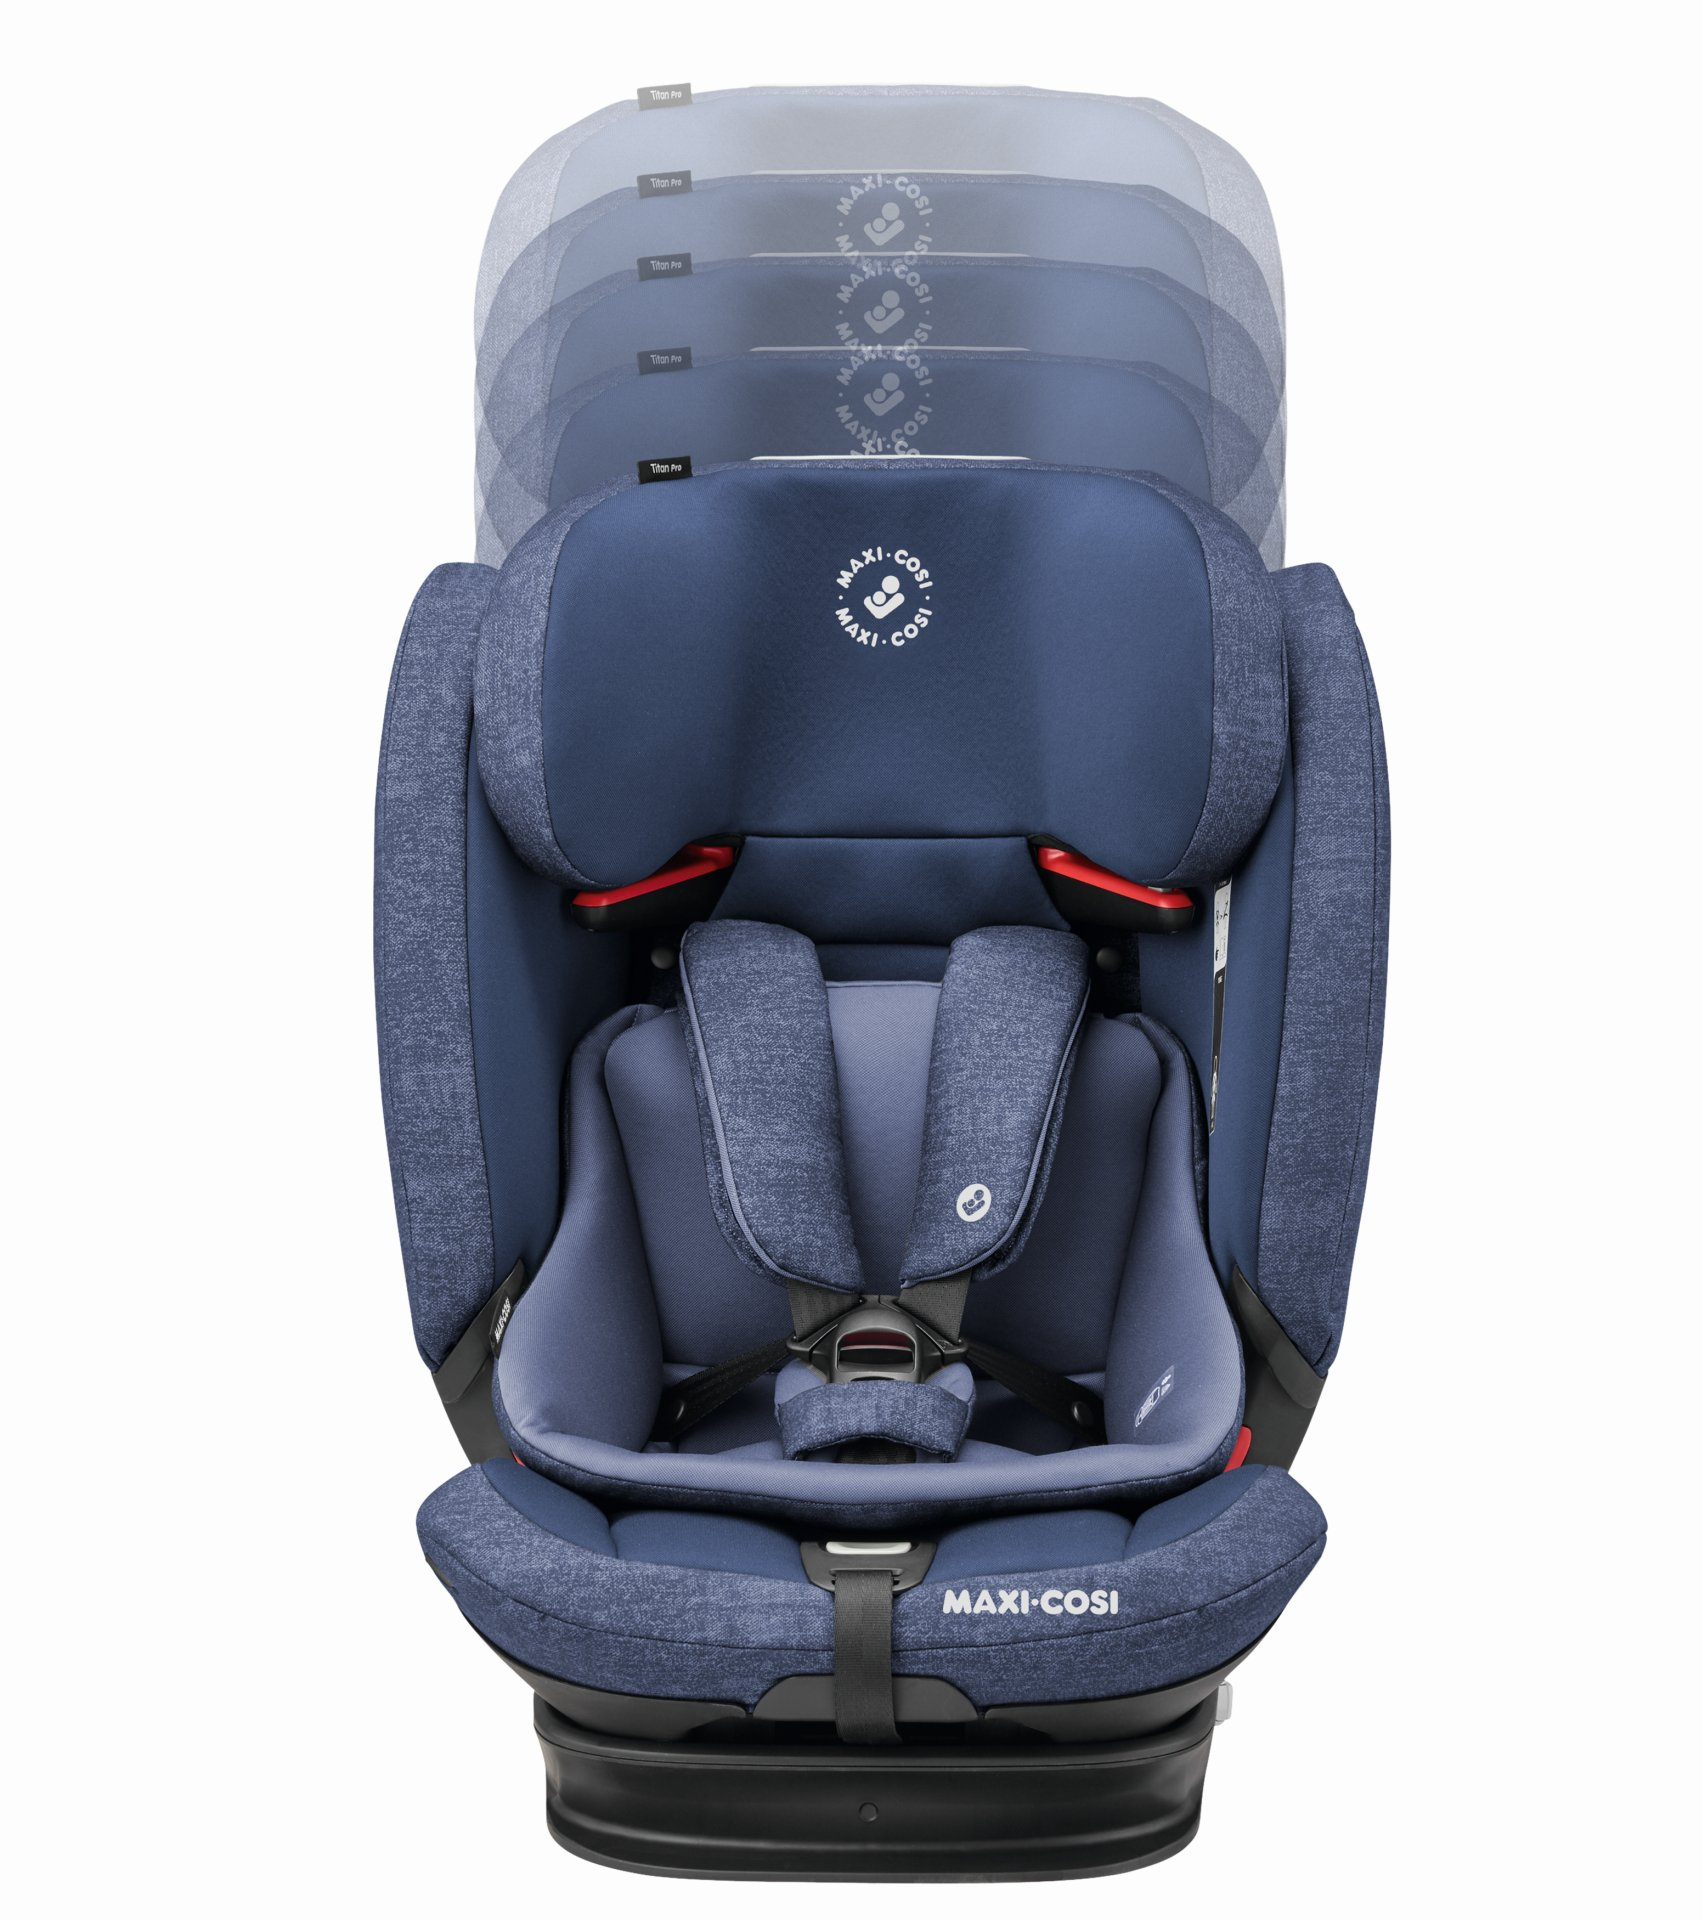 maxi cosi child car seat titan pro 2019 nomad blue buy at kidsroom car seats. Black Bedroom Furniture Sets. Home Design Ideas